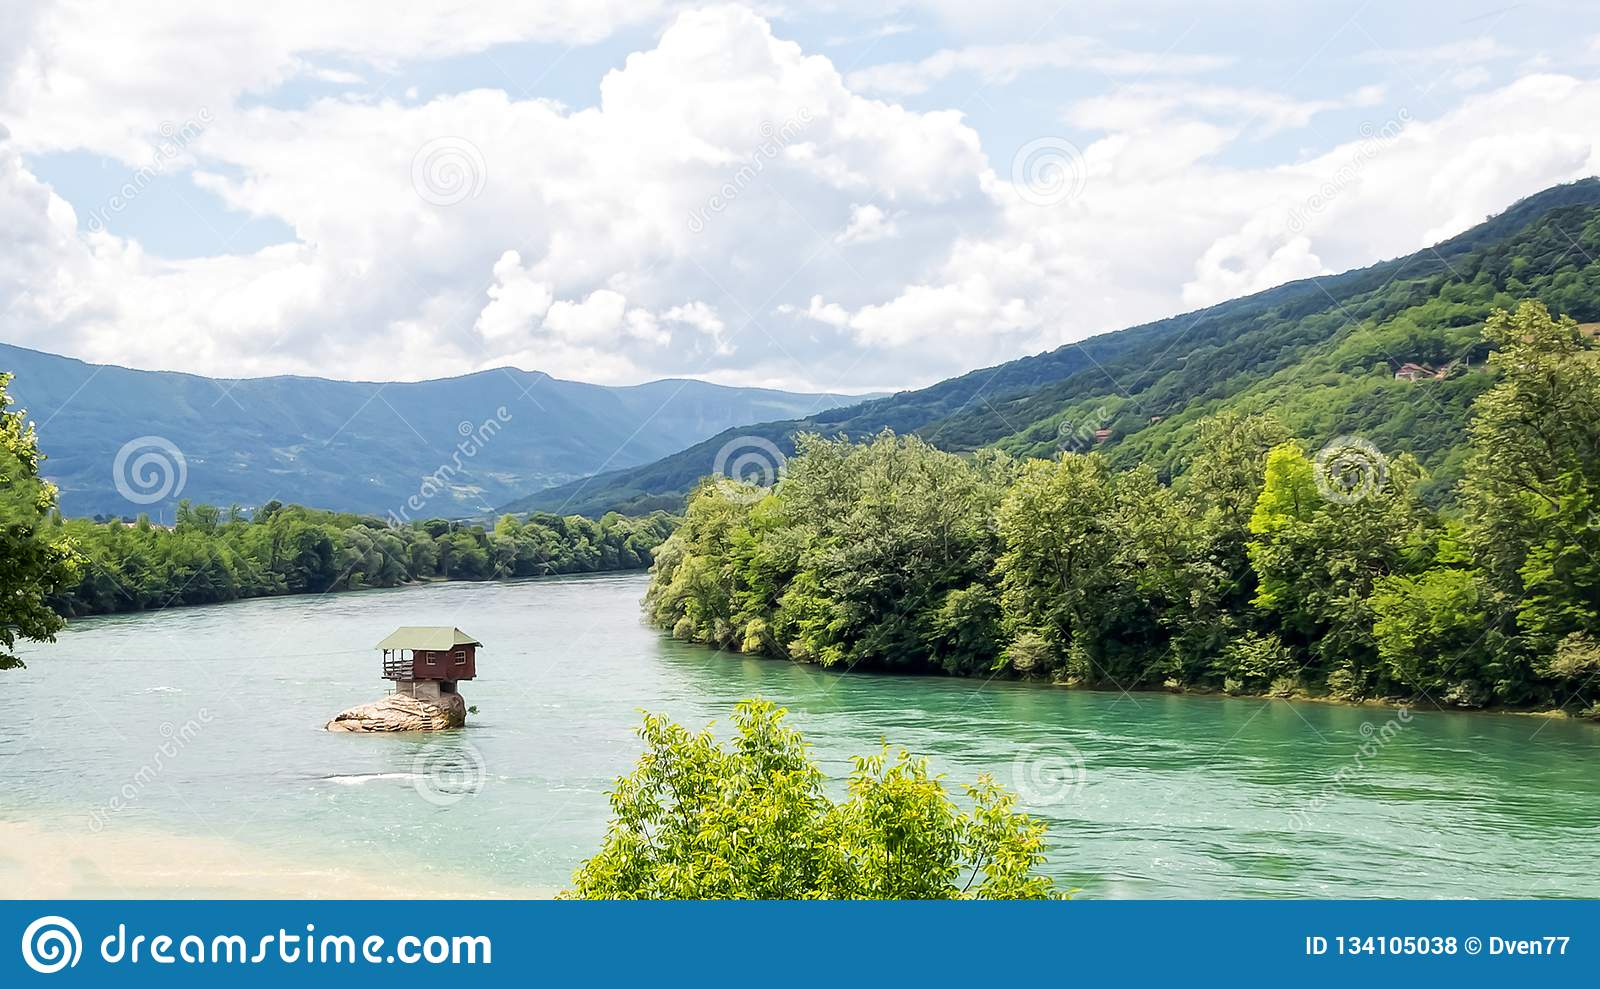 Lonely house on the river Drina in Bajina Basta. Cloudy sky and mountains on background. Serbia